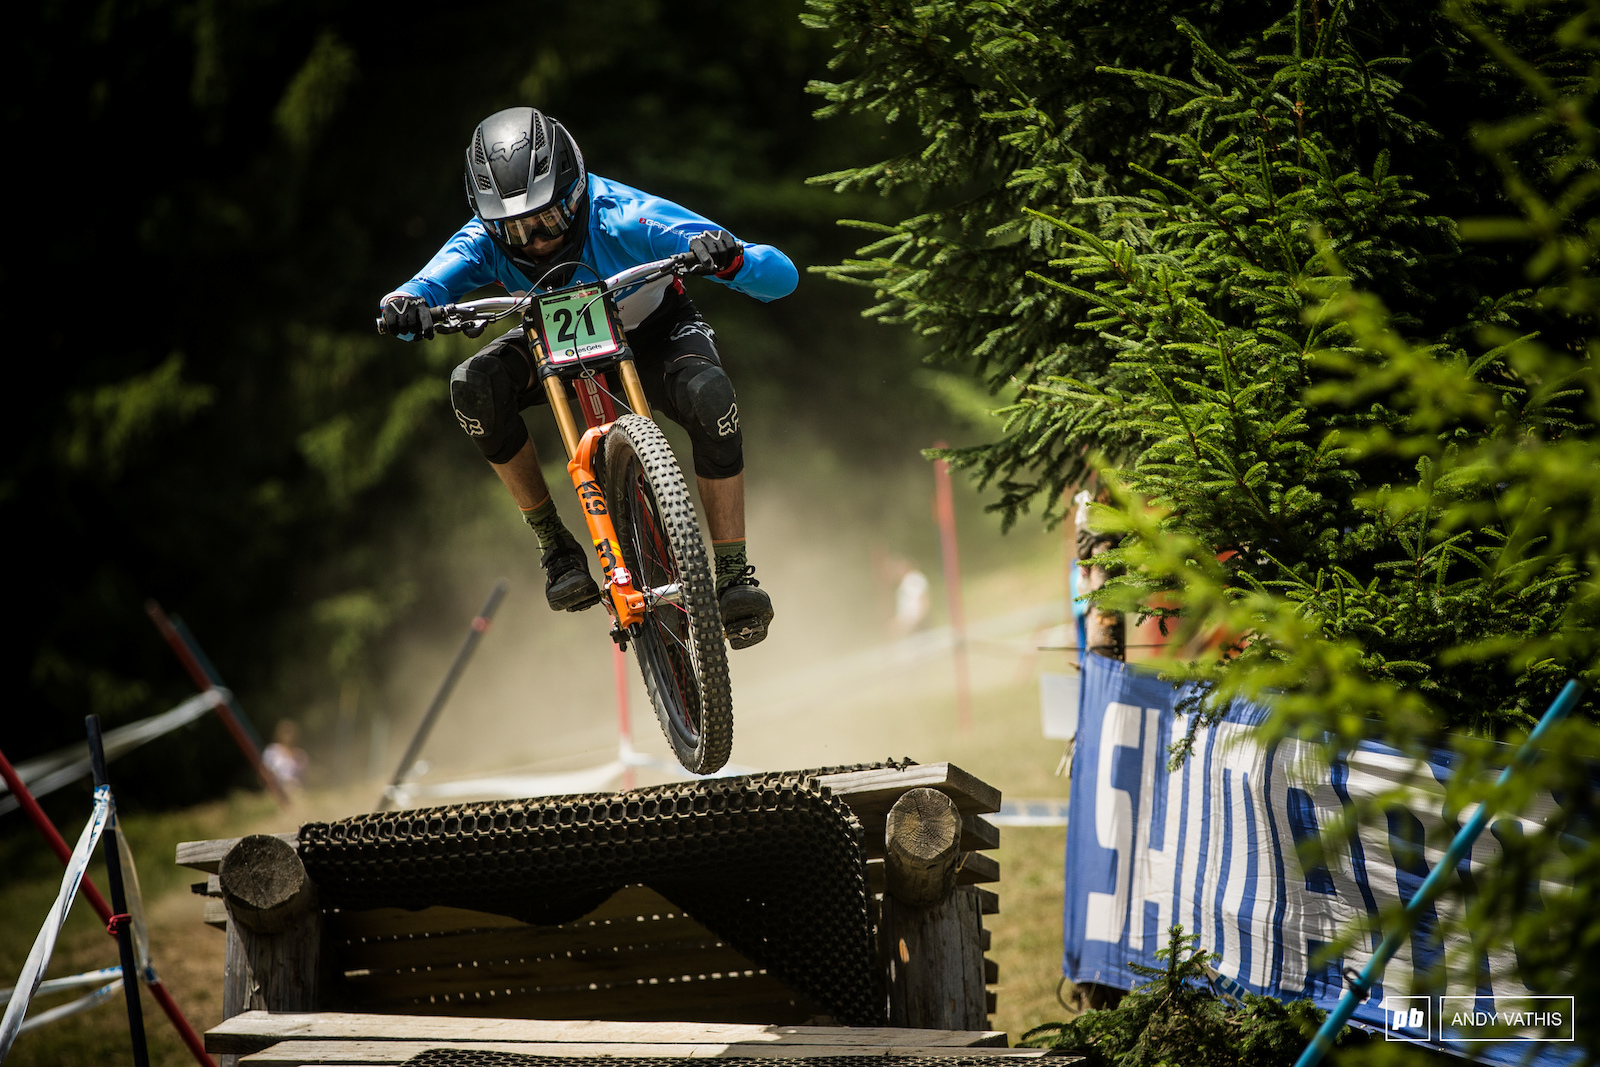 P2 qualifier for Canada s Seth Sherlock his best result yet.